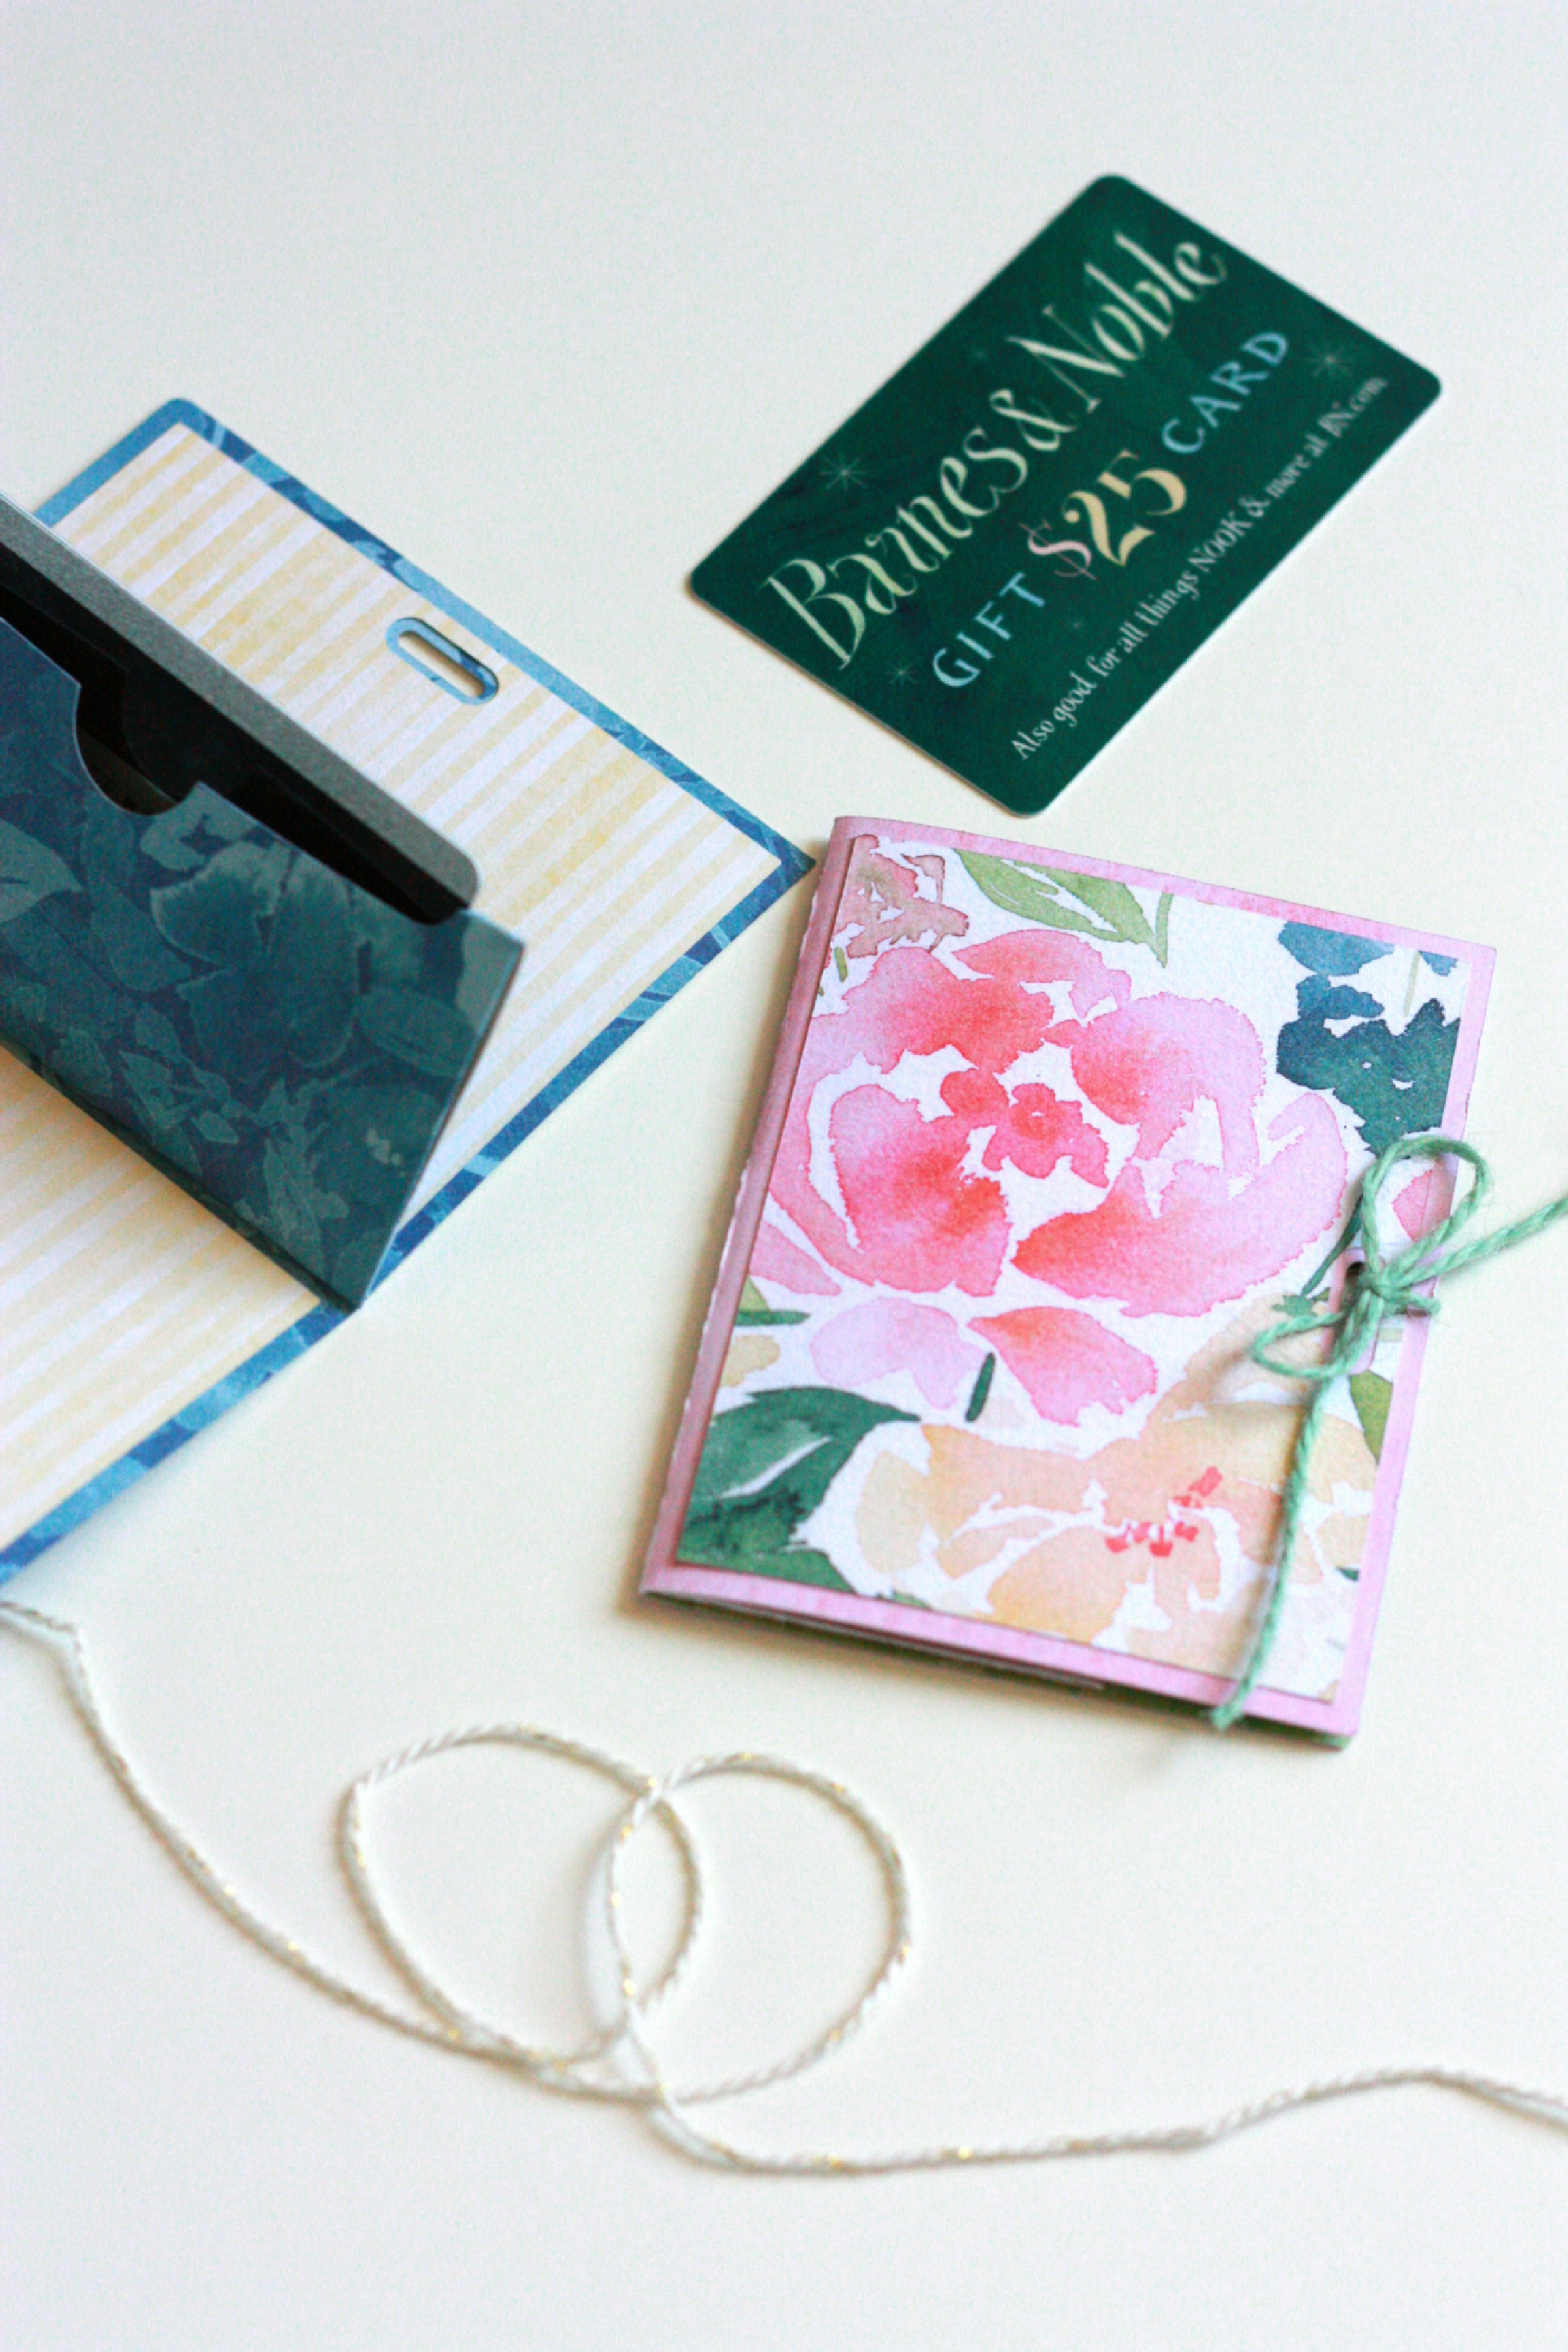 Diy gift card holder with cricut explore air 2 everyday jenny gift card holder made with cricut explore air 2 negle Image collections